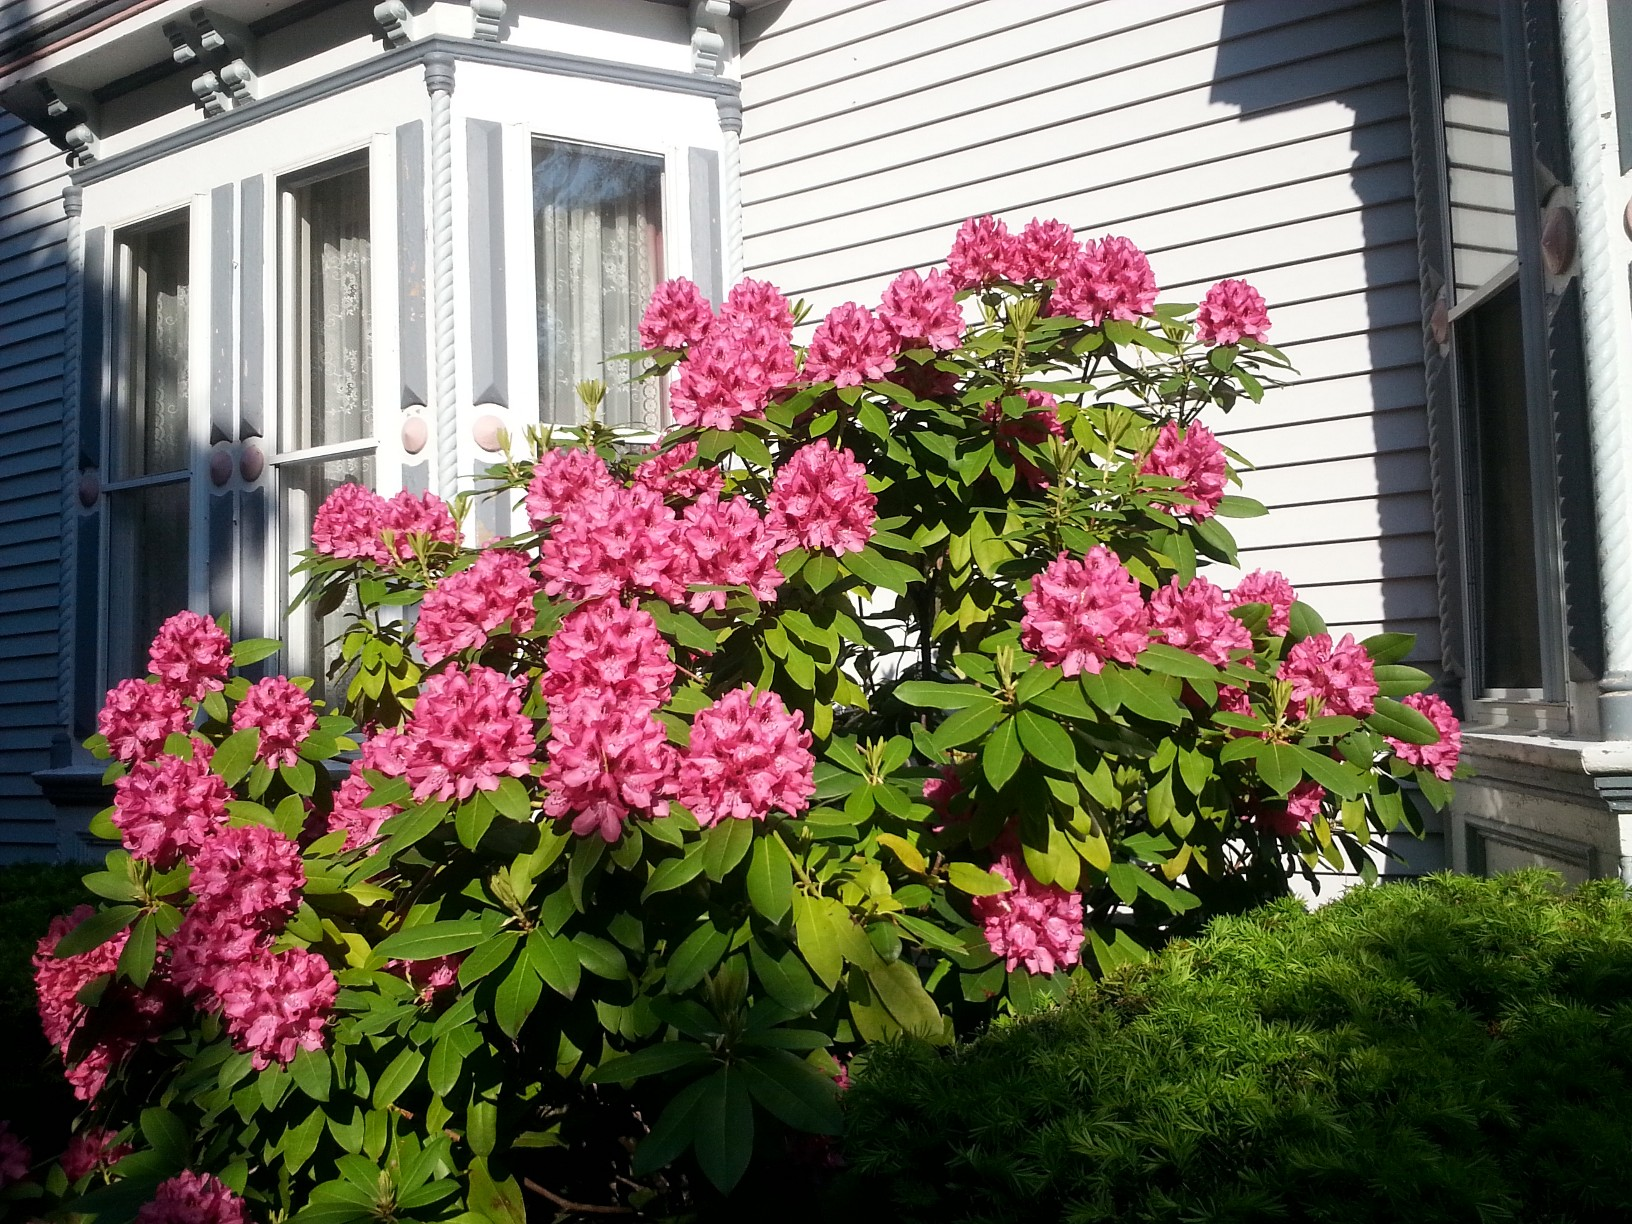 Rhododendron blooming at the Inn